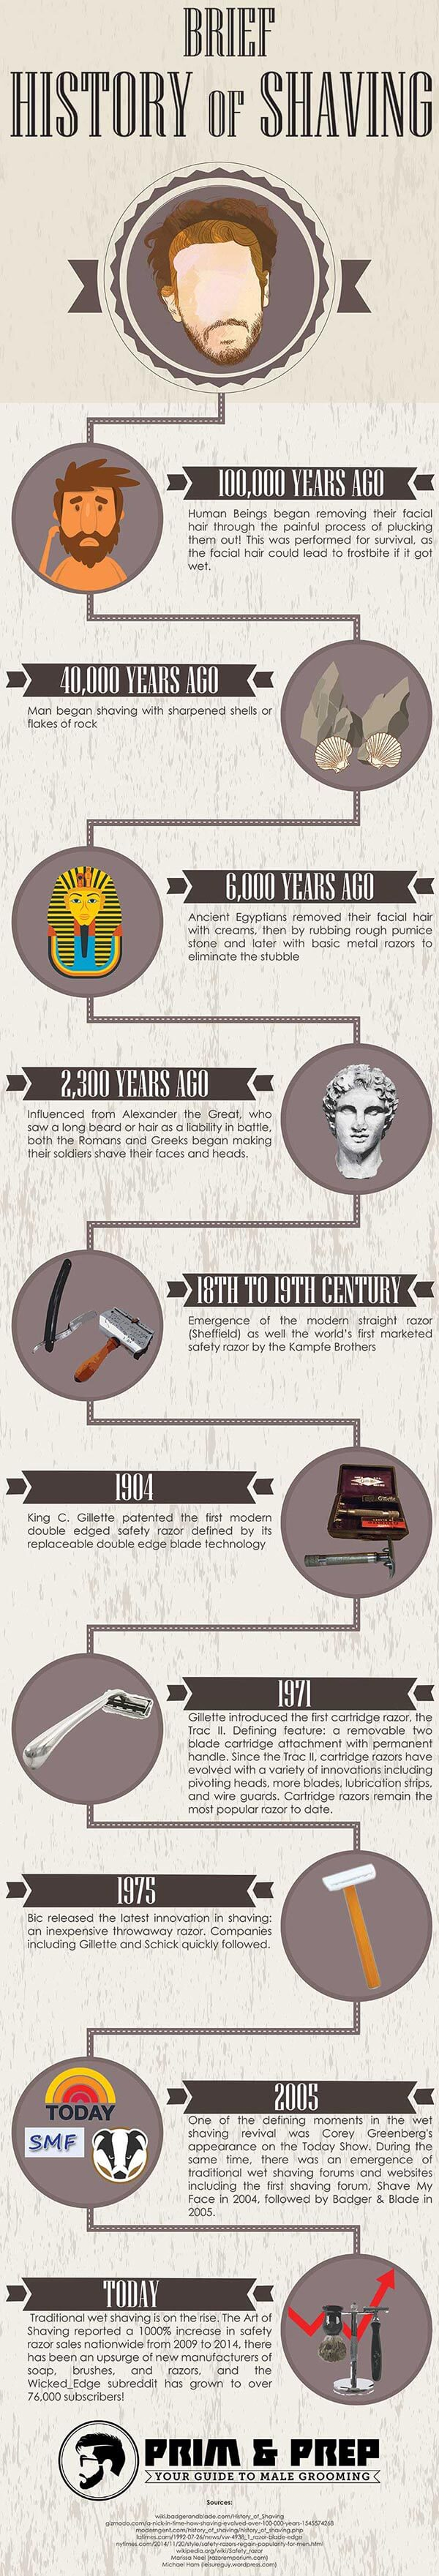 Infographic: Brief history of shaving